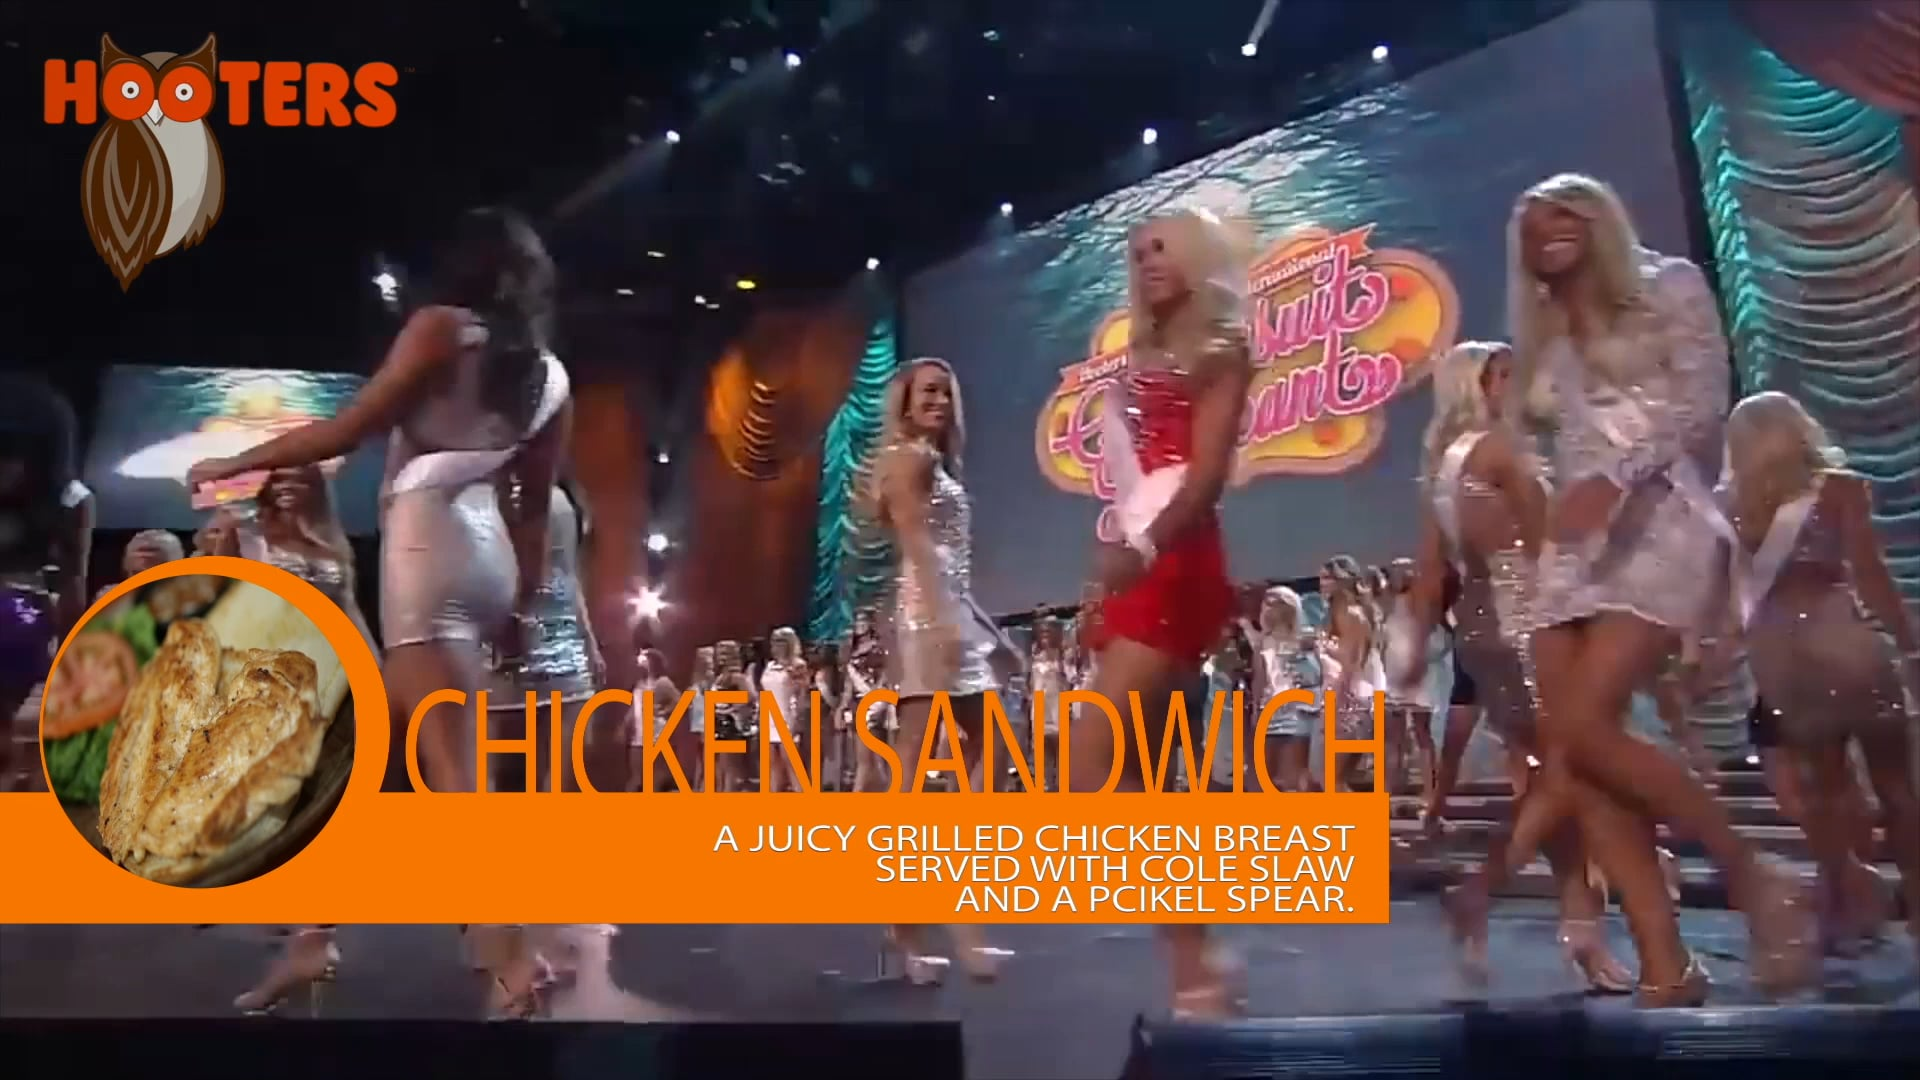 Hooters Swimsuit Pageant with Lower Third Food Items 2016